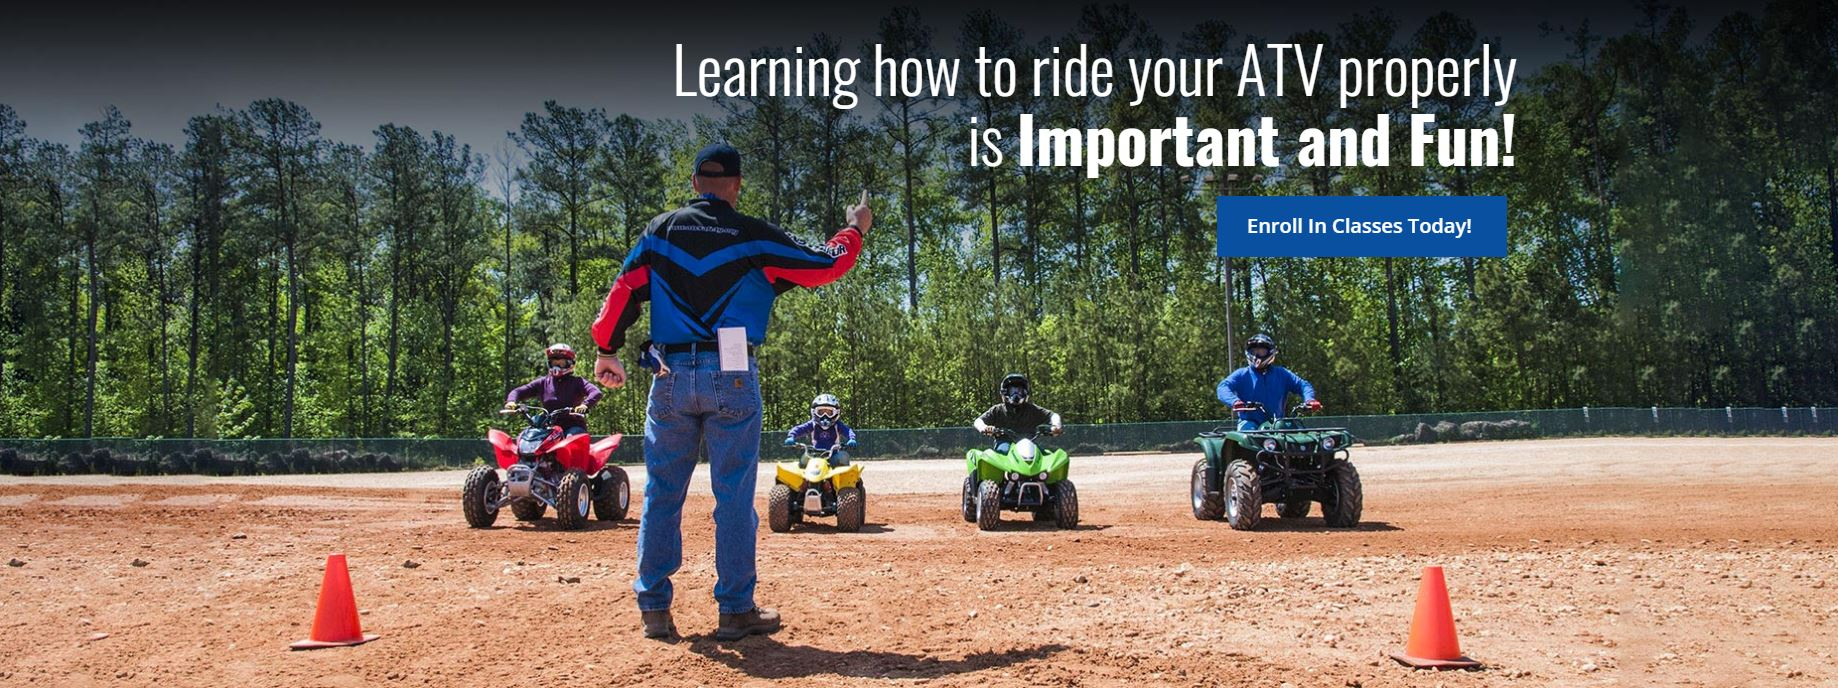 ATV Safety Institute Banner